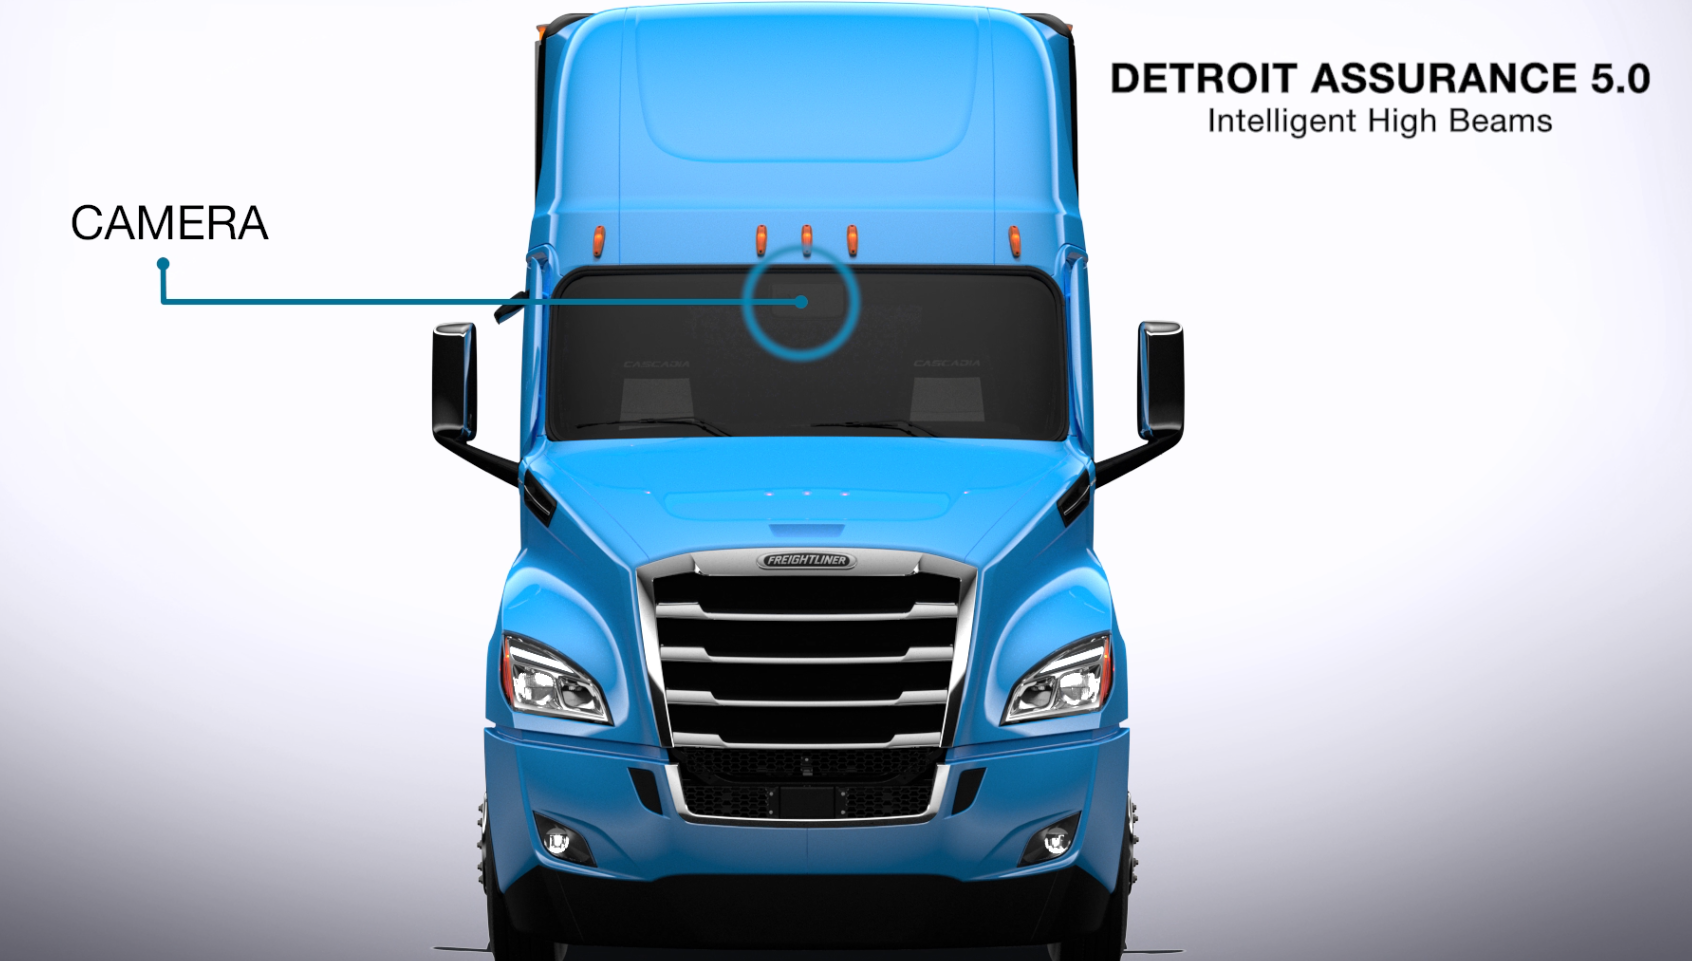 Detroit Assurance 5.0 Intelligent High Beams